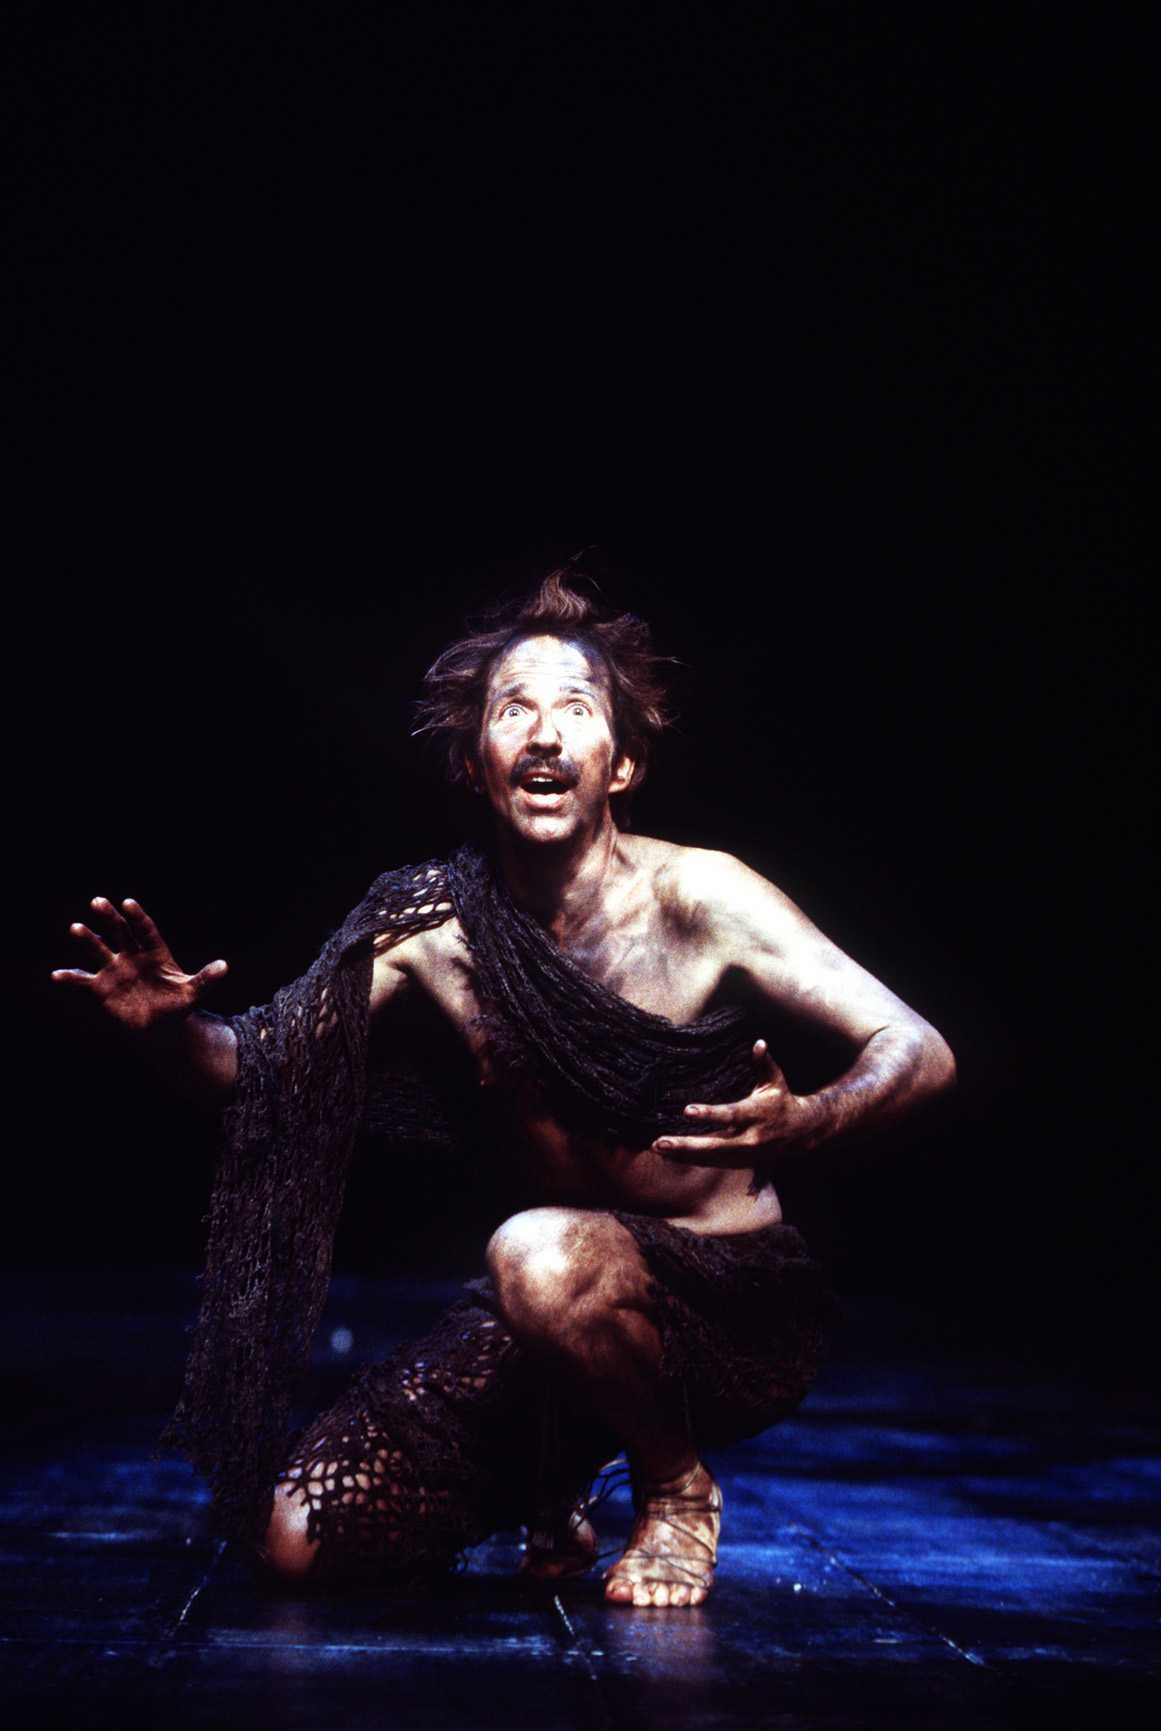 Edgar dressed as Poor Tom in rags and dirt, kneeling on the floor in the 1999 production of King Lear